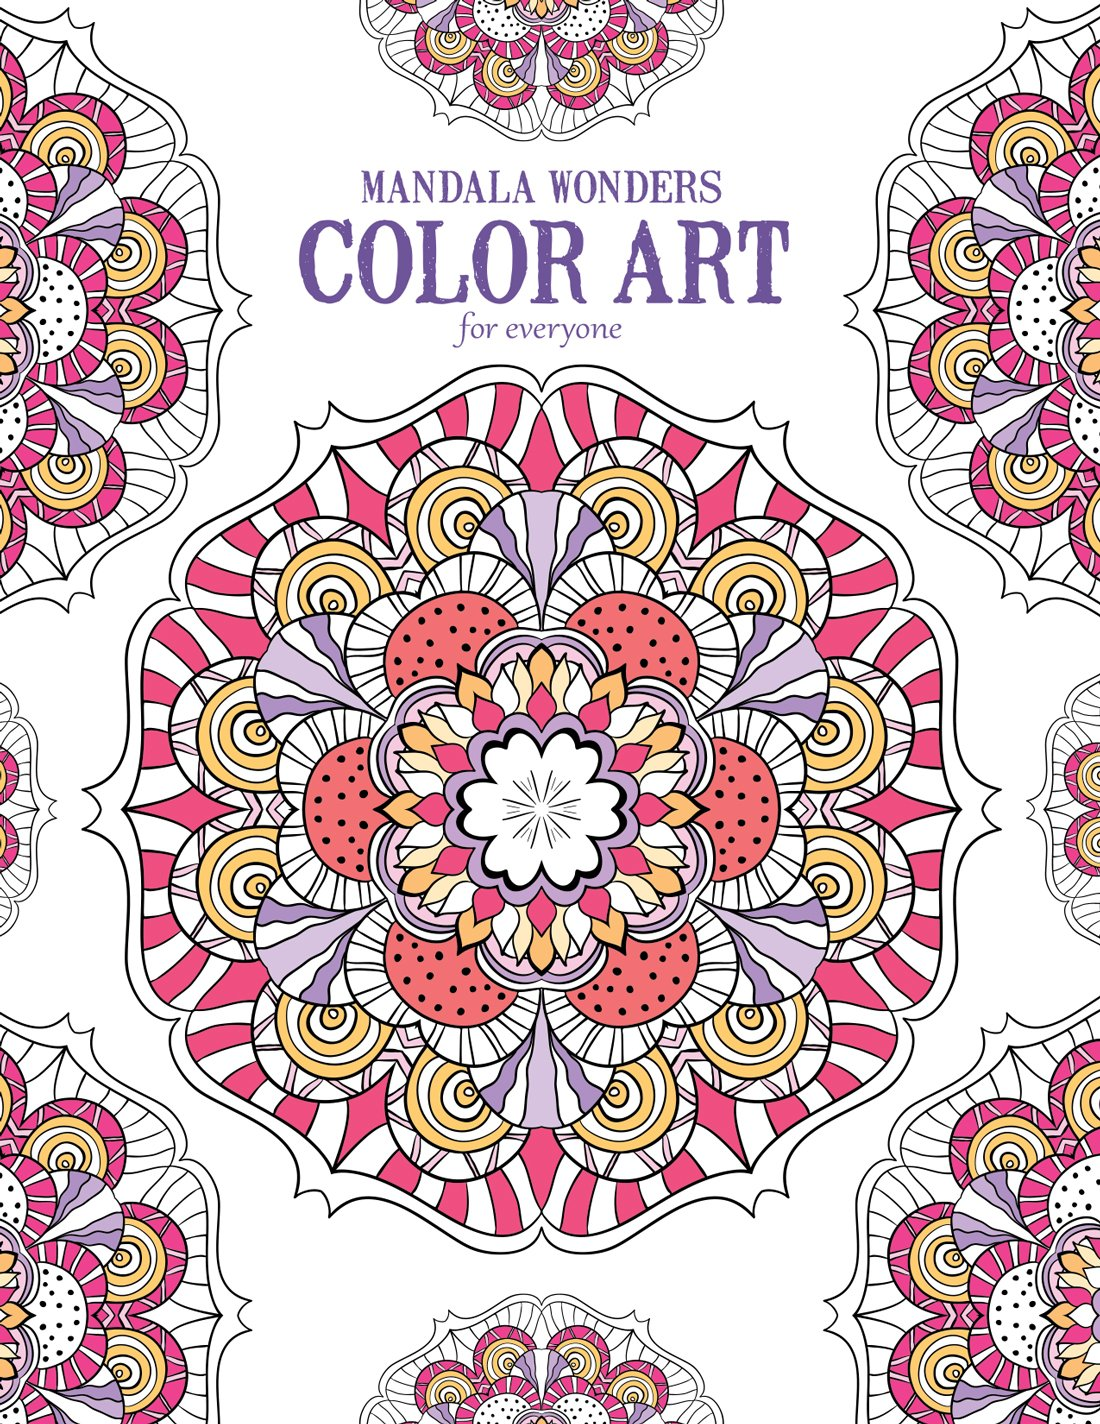 Color art kaleidoscope - Amazon Com Mandala Wonders Color Art For Everyone Leisure Arts 6765 0028906067651 Leisure Arts The Guild Of Master Craftsman Publications Ltd